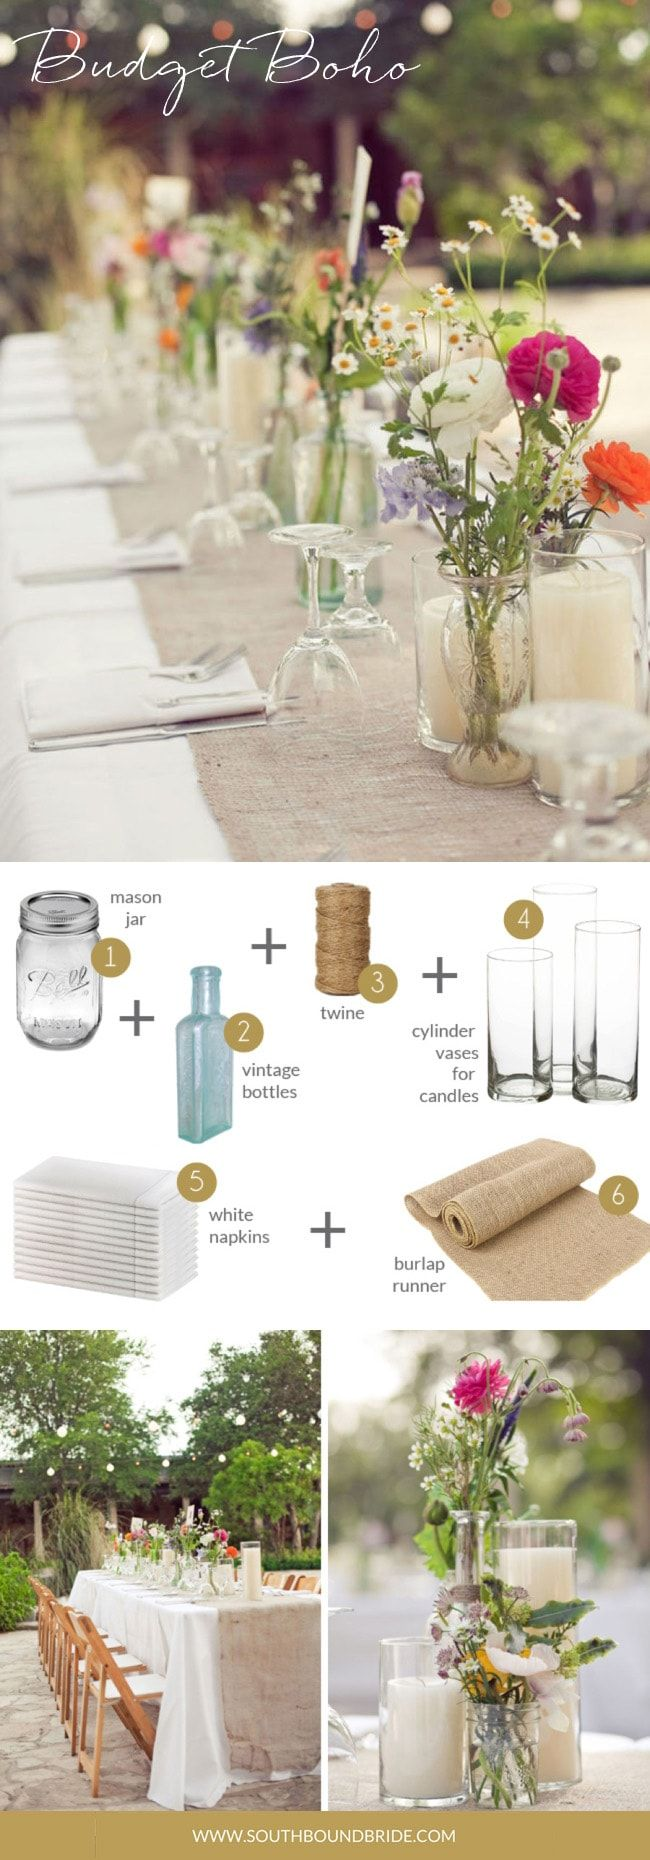 Ten Tables: Boho {Part 2}